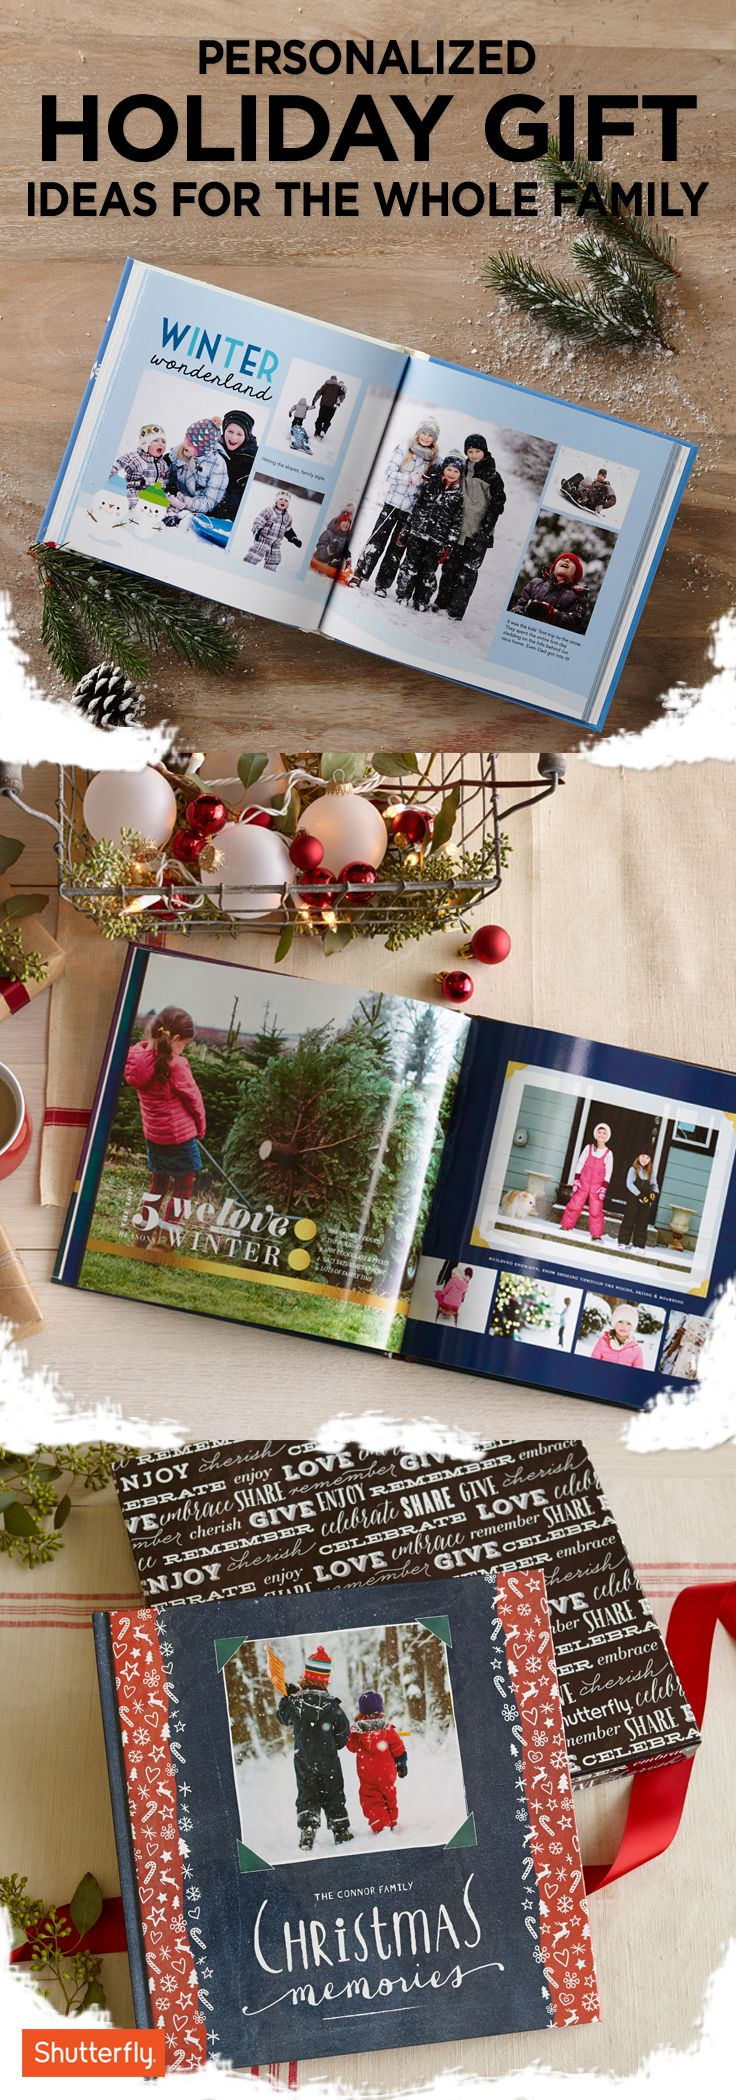 294 Best Holiday Gifts Images On Pinterest Christmas Presents